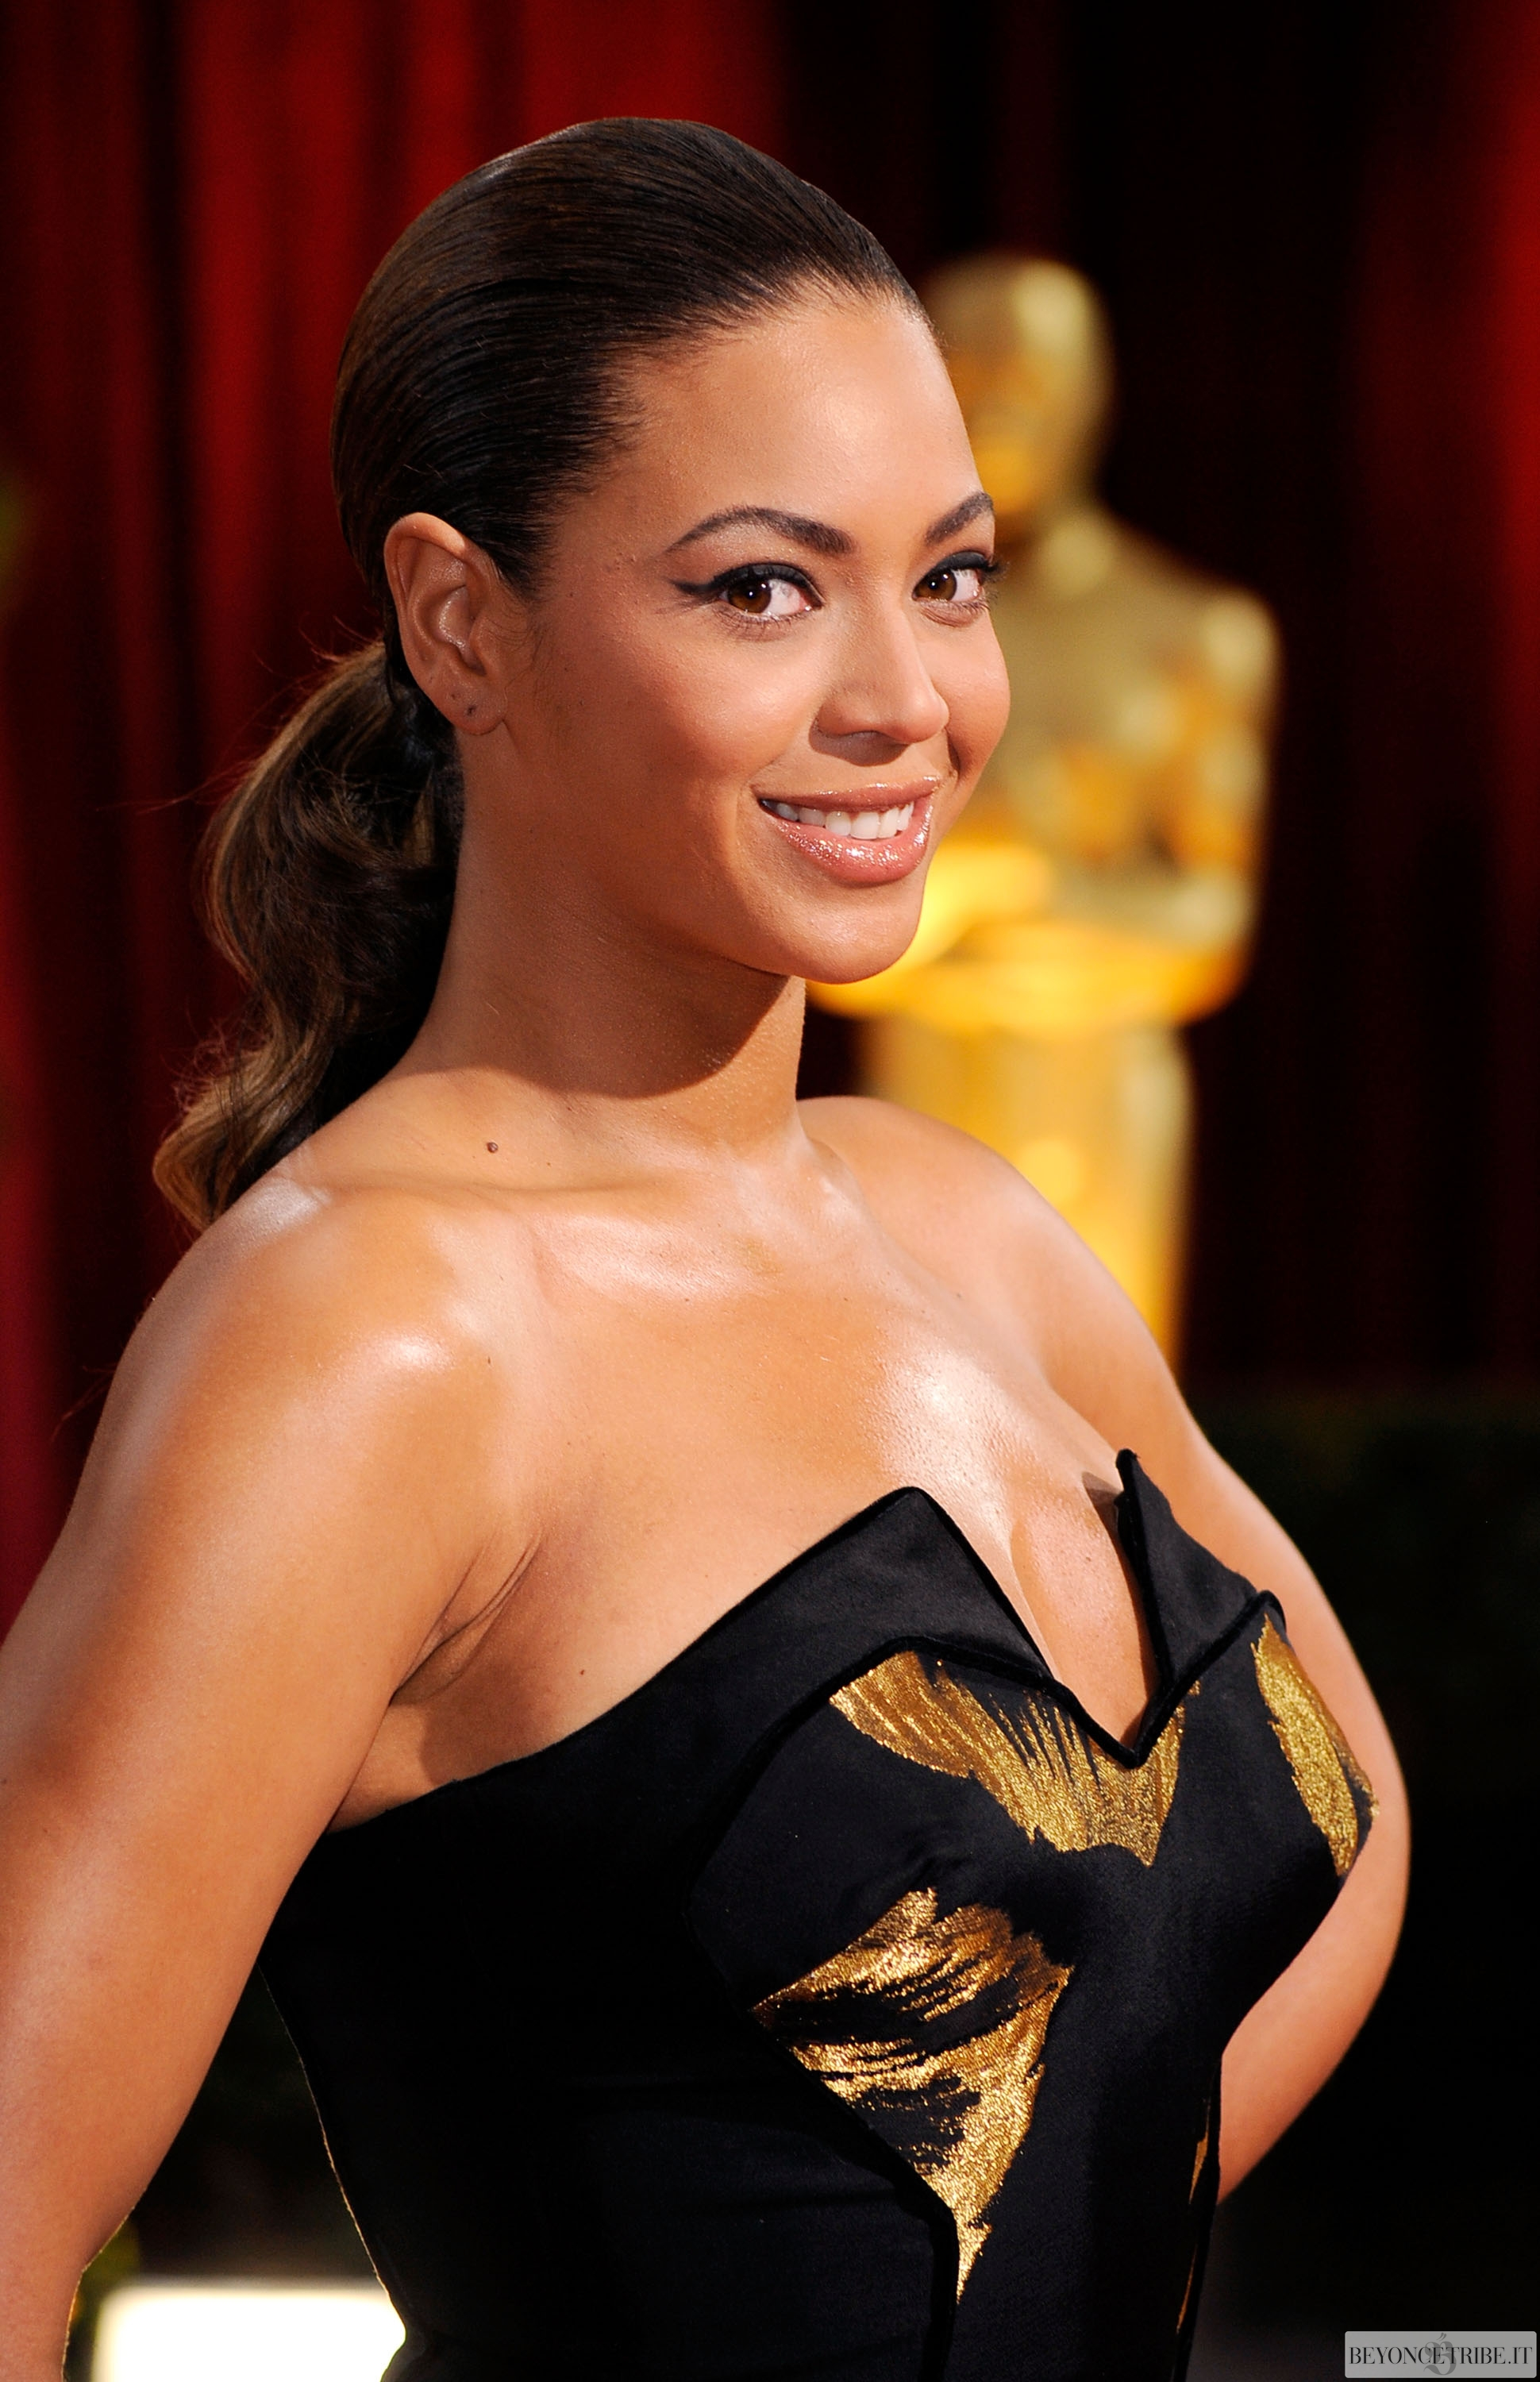 Beyoncé on The 81st Annual Academy Awards 22 FEB 2009